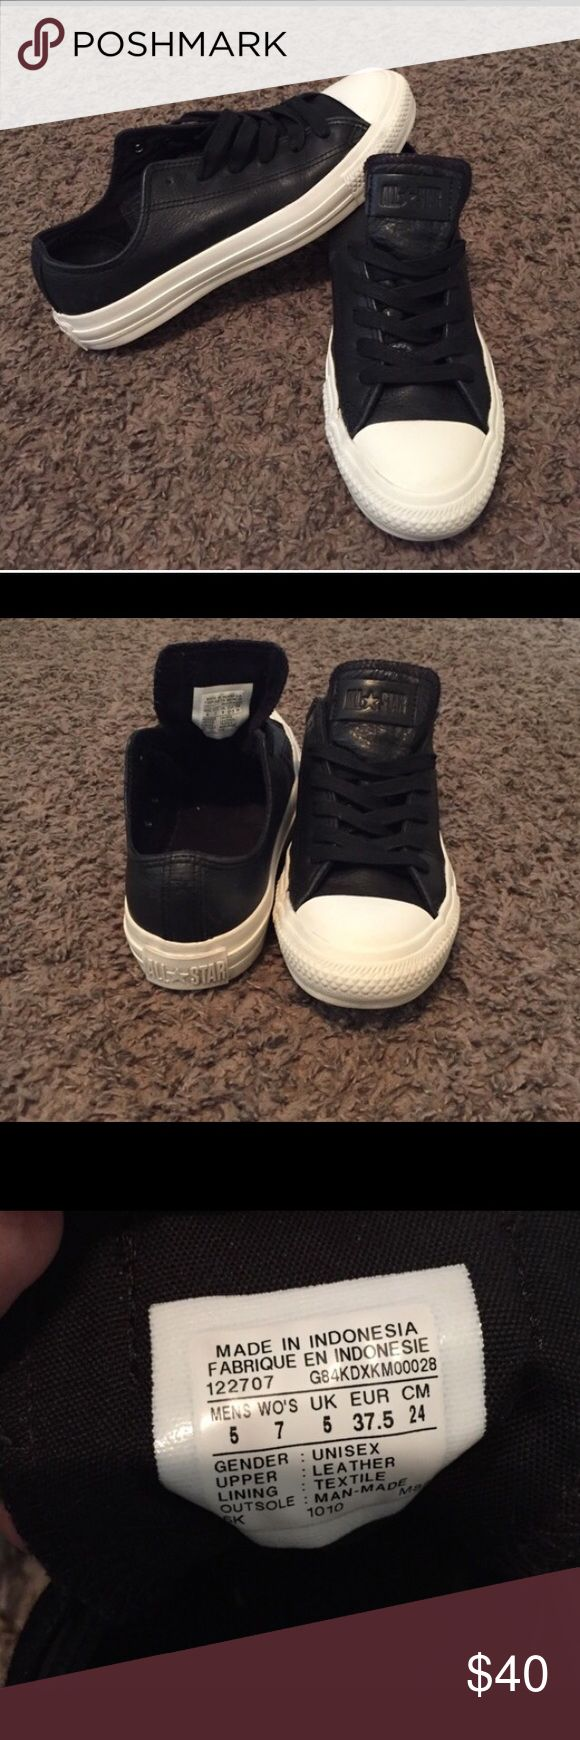 Leather converse Black leather chuck Taylor converse in really good condition. Size 5 men's/ 7 women's. Converse Shoes Sneakers